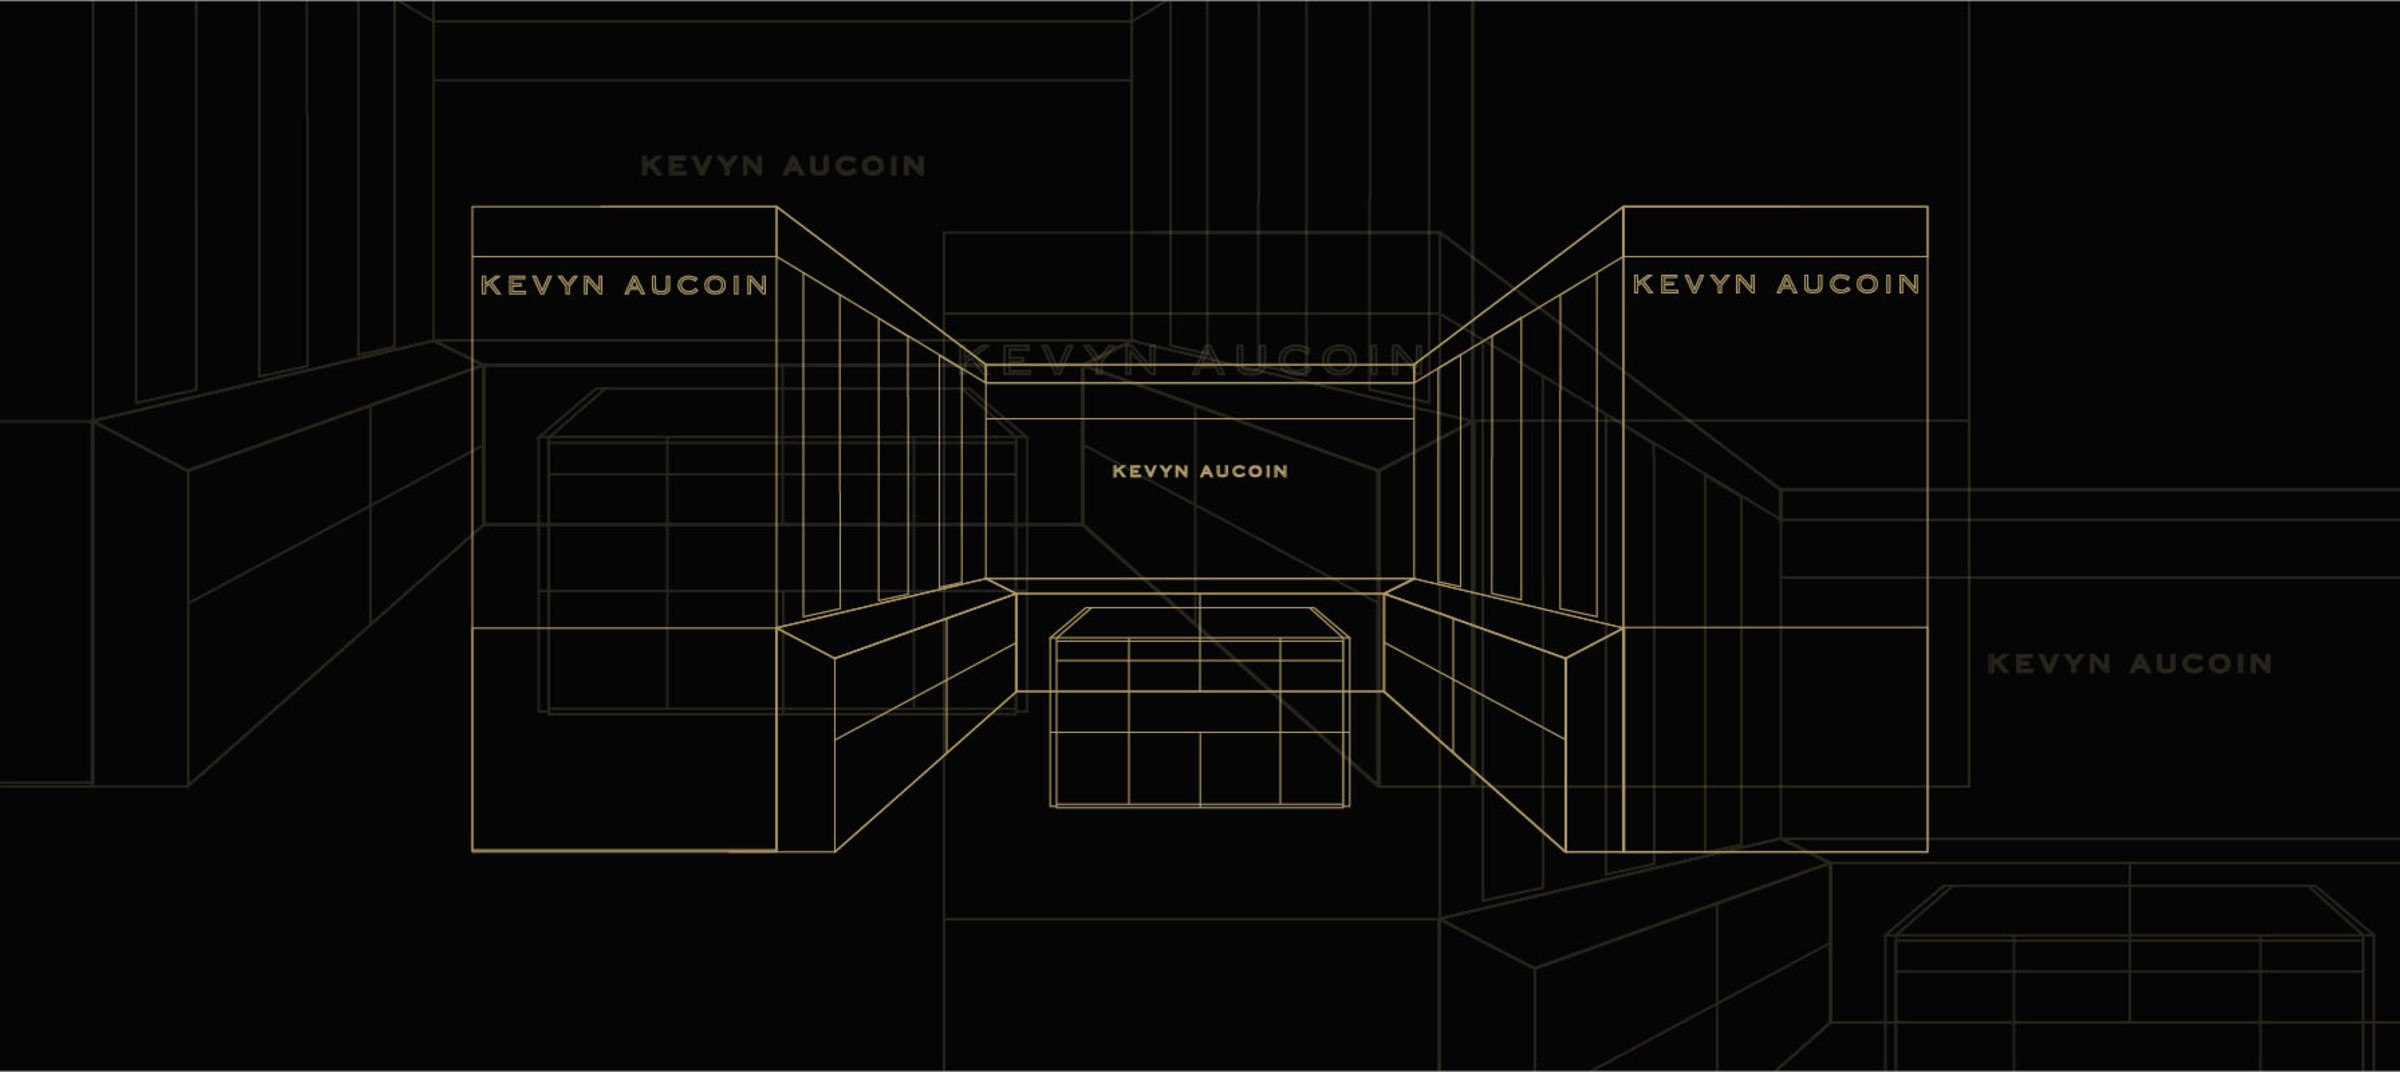 Kevyn Aucoin store mock-up by DTE Studio